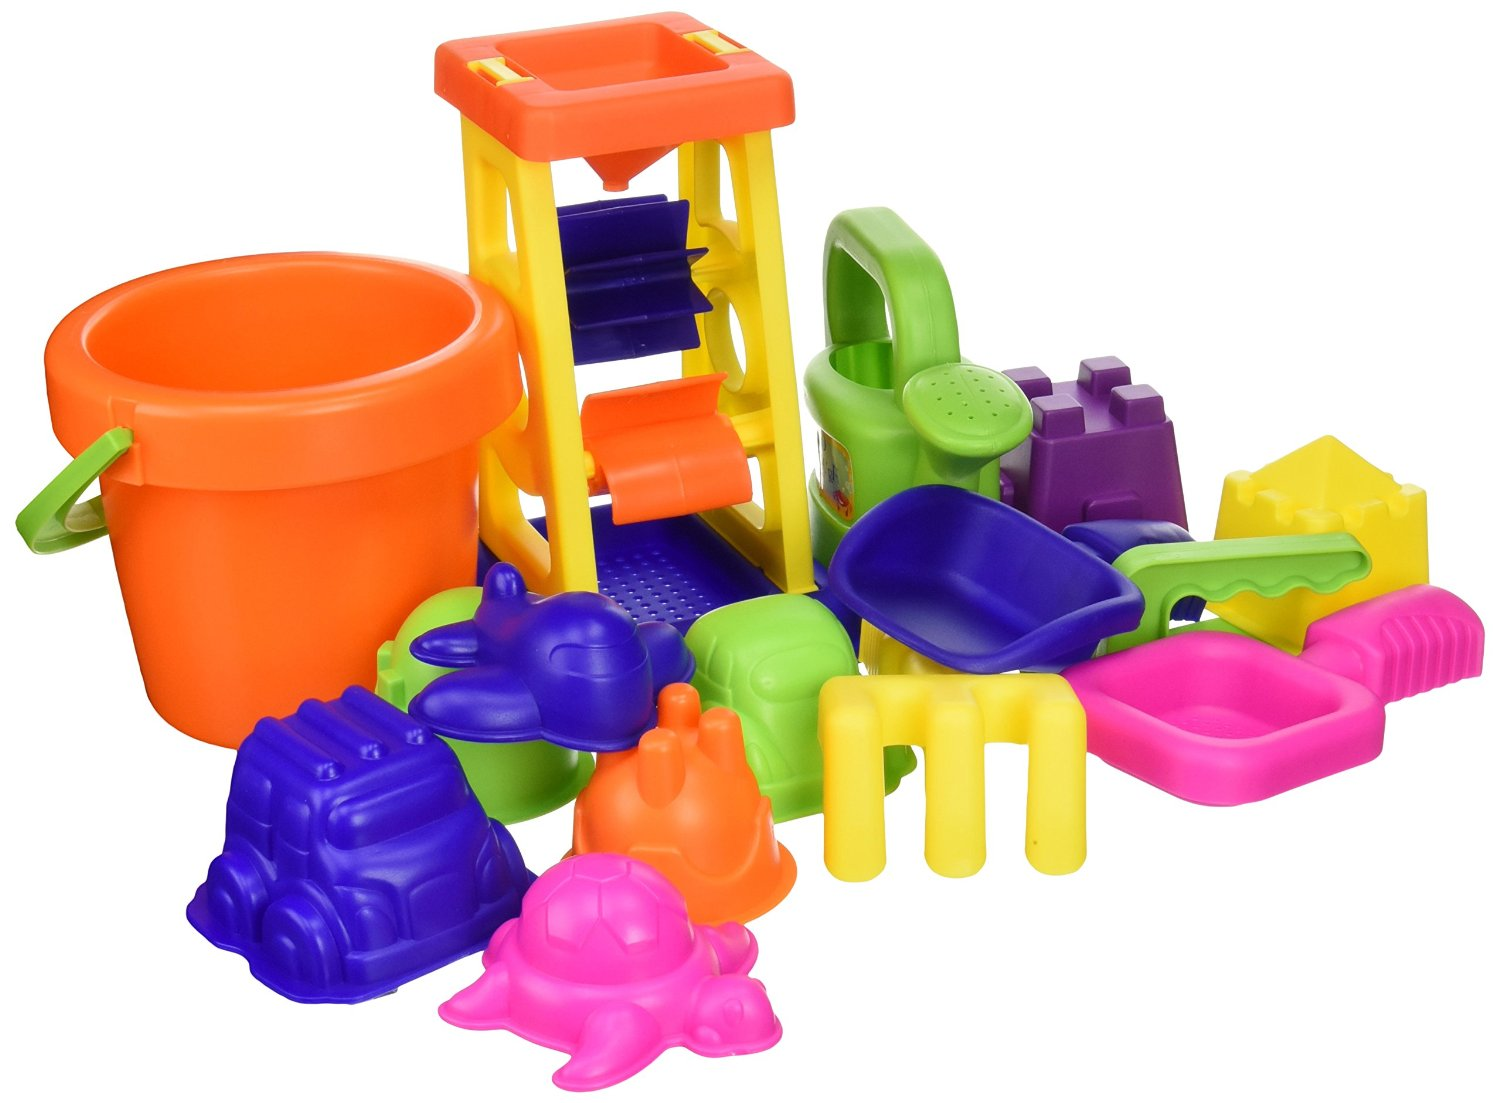 Sand & Water 15-pc Sand Toy Set, Water 15pc Ball Sand vary Stop Molds Click Zippered World Blast Beach Rakes... by